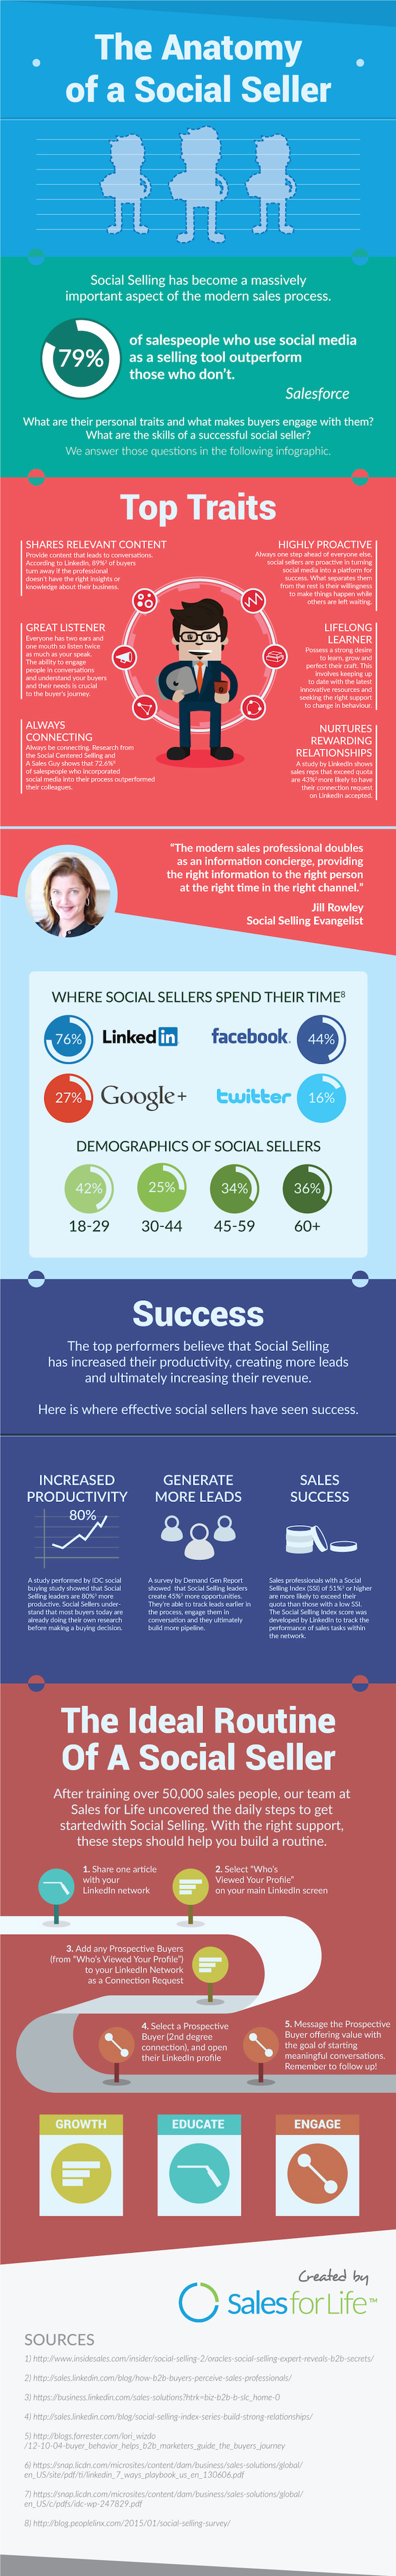 bestbuzz-blog-infographic-where-and-how-social-sellers-spend-their-time